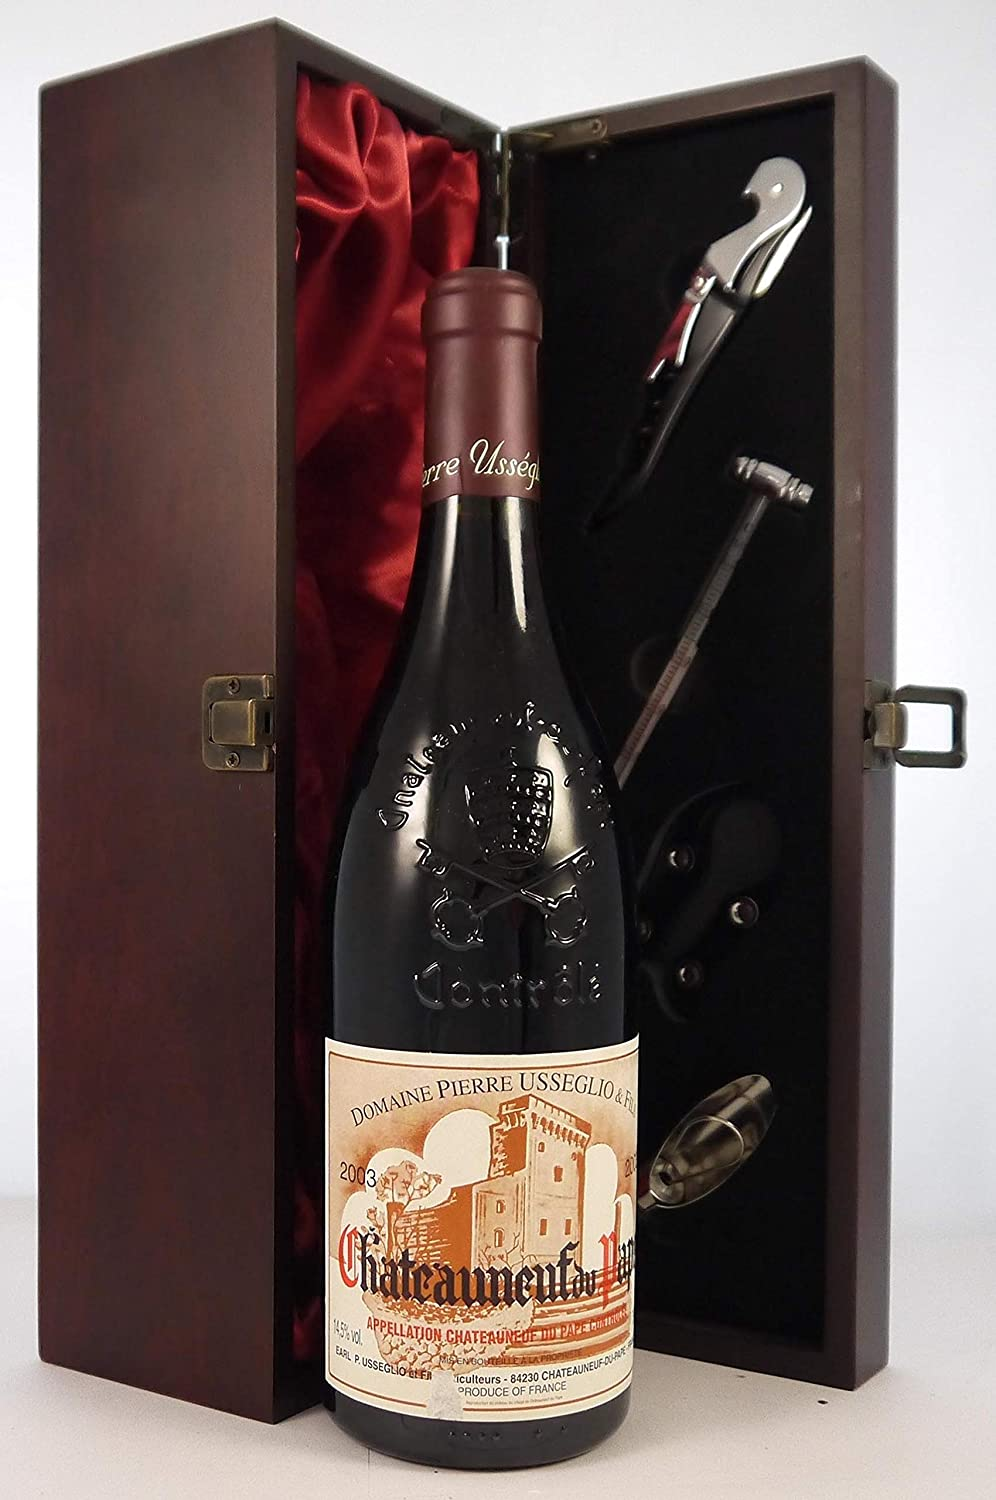 Chateauneuf du Pape 2003 Pierre Usseglio vintage wine in a silk lined wooden box with four wine accessories, 1 x 750ml